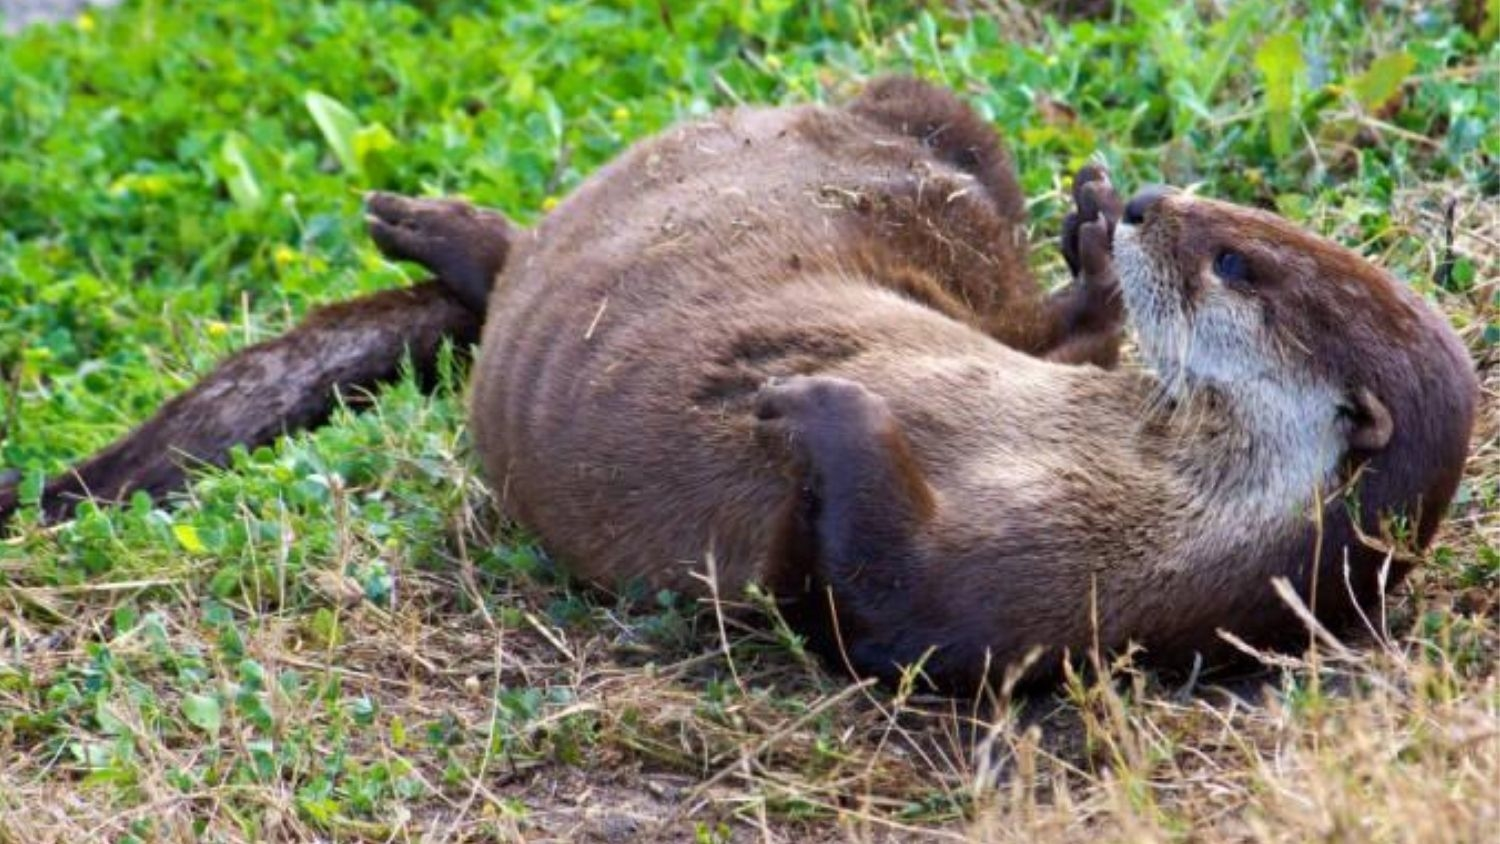 North American river otter - Study Finds Diseases in NC Otter Population Associated With Pets - Forestry and Environmental Resources NC State University